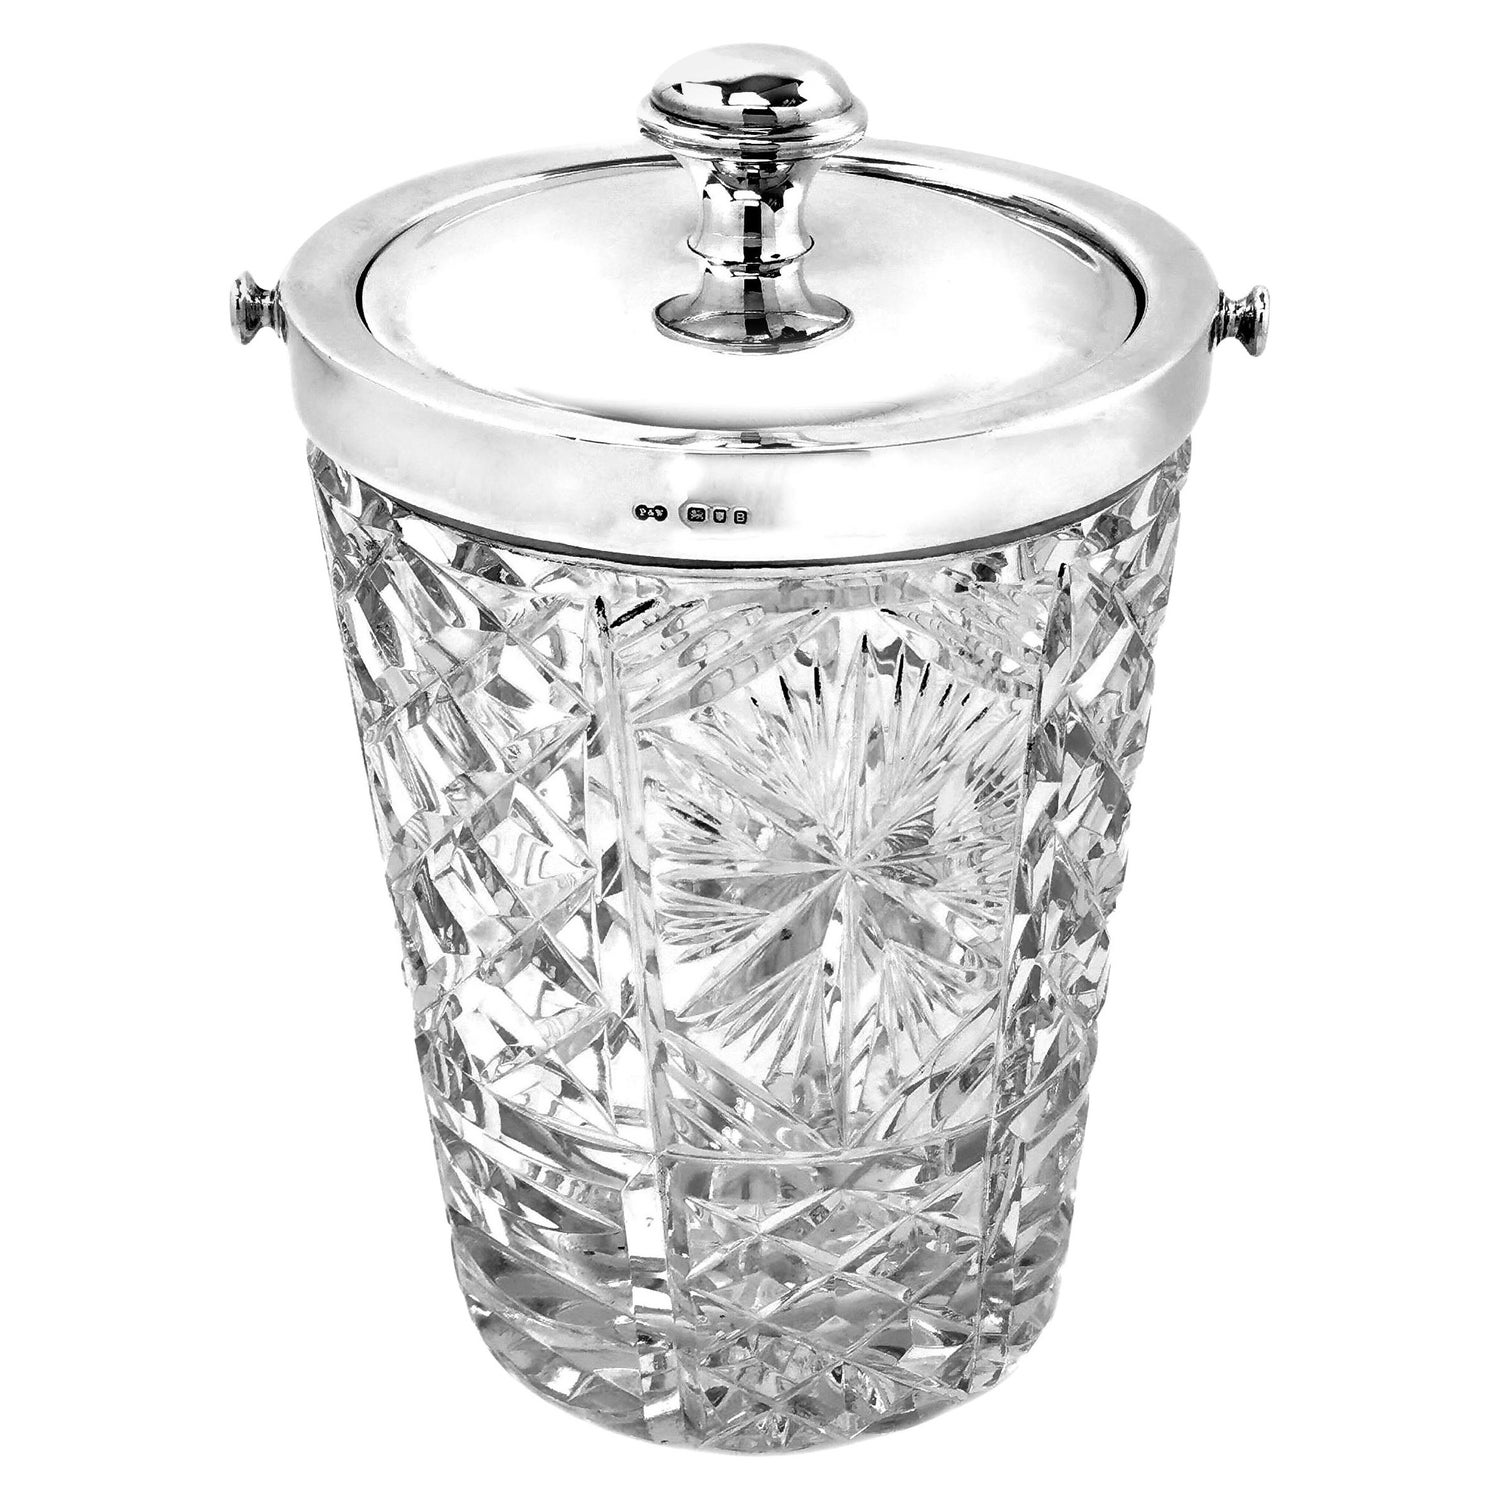 Vintage Sterling Silver & Cut Glass Ice Bucket, England, 1937